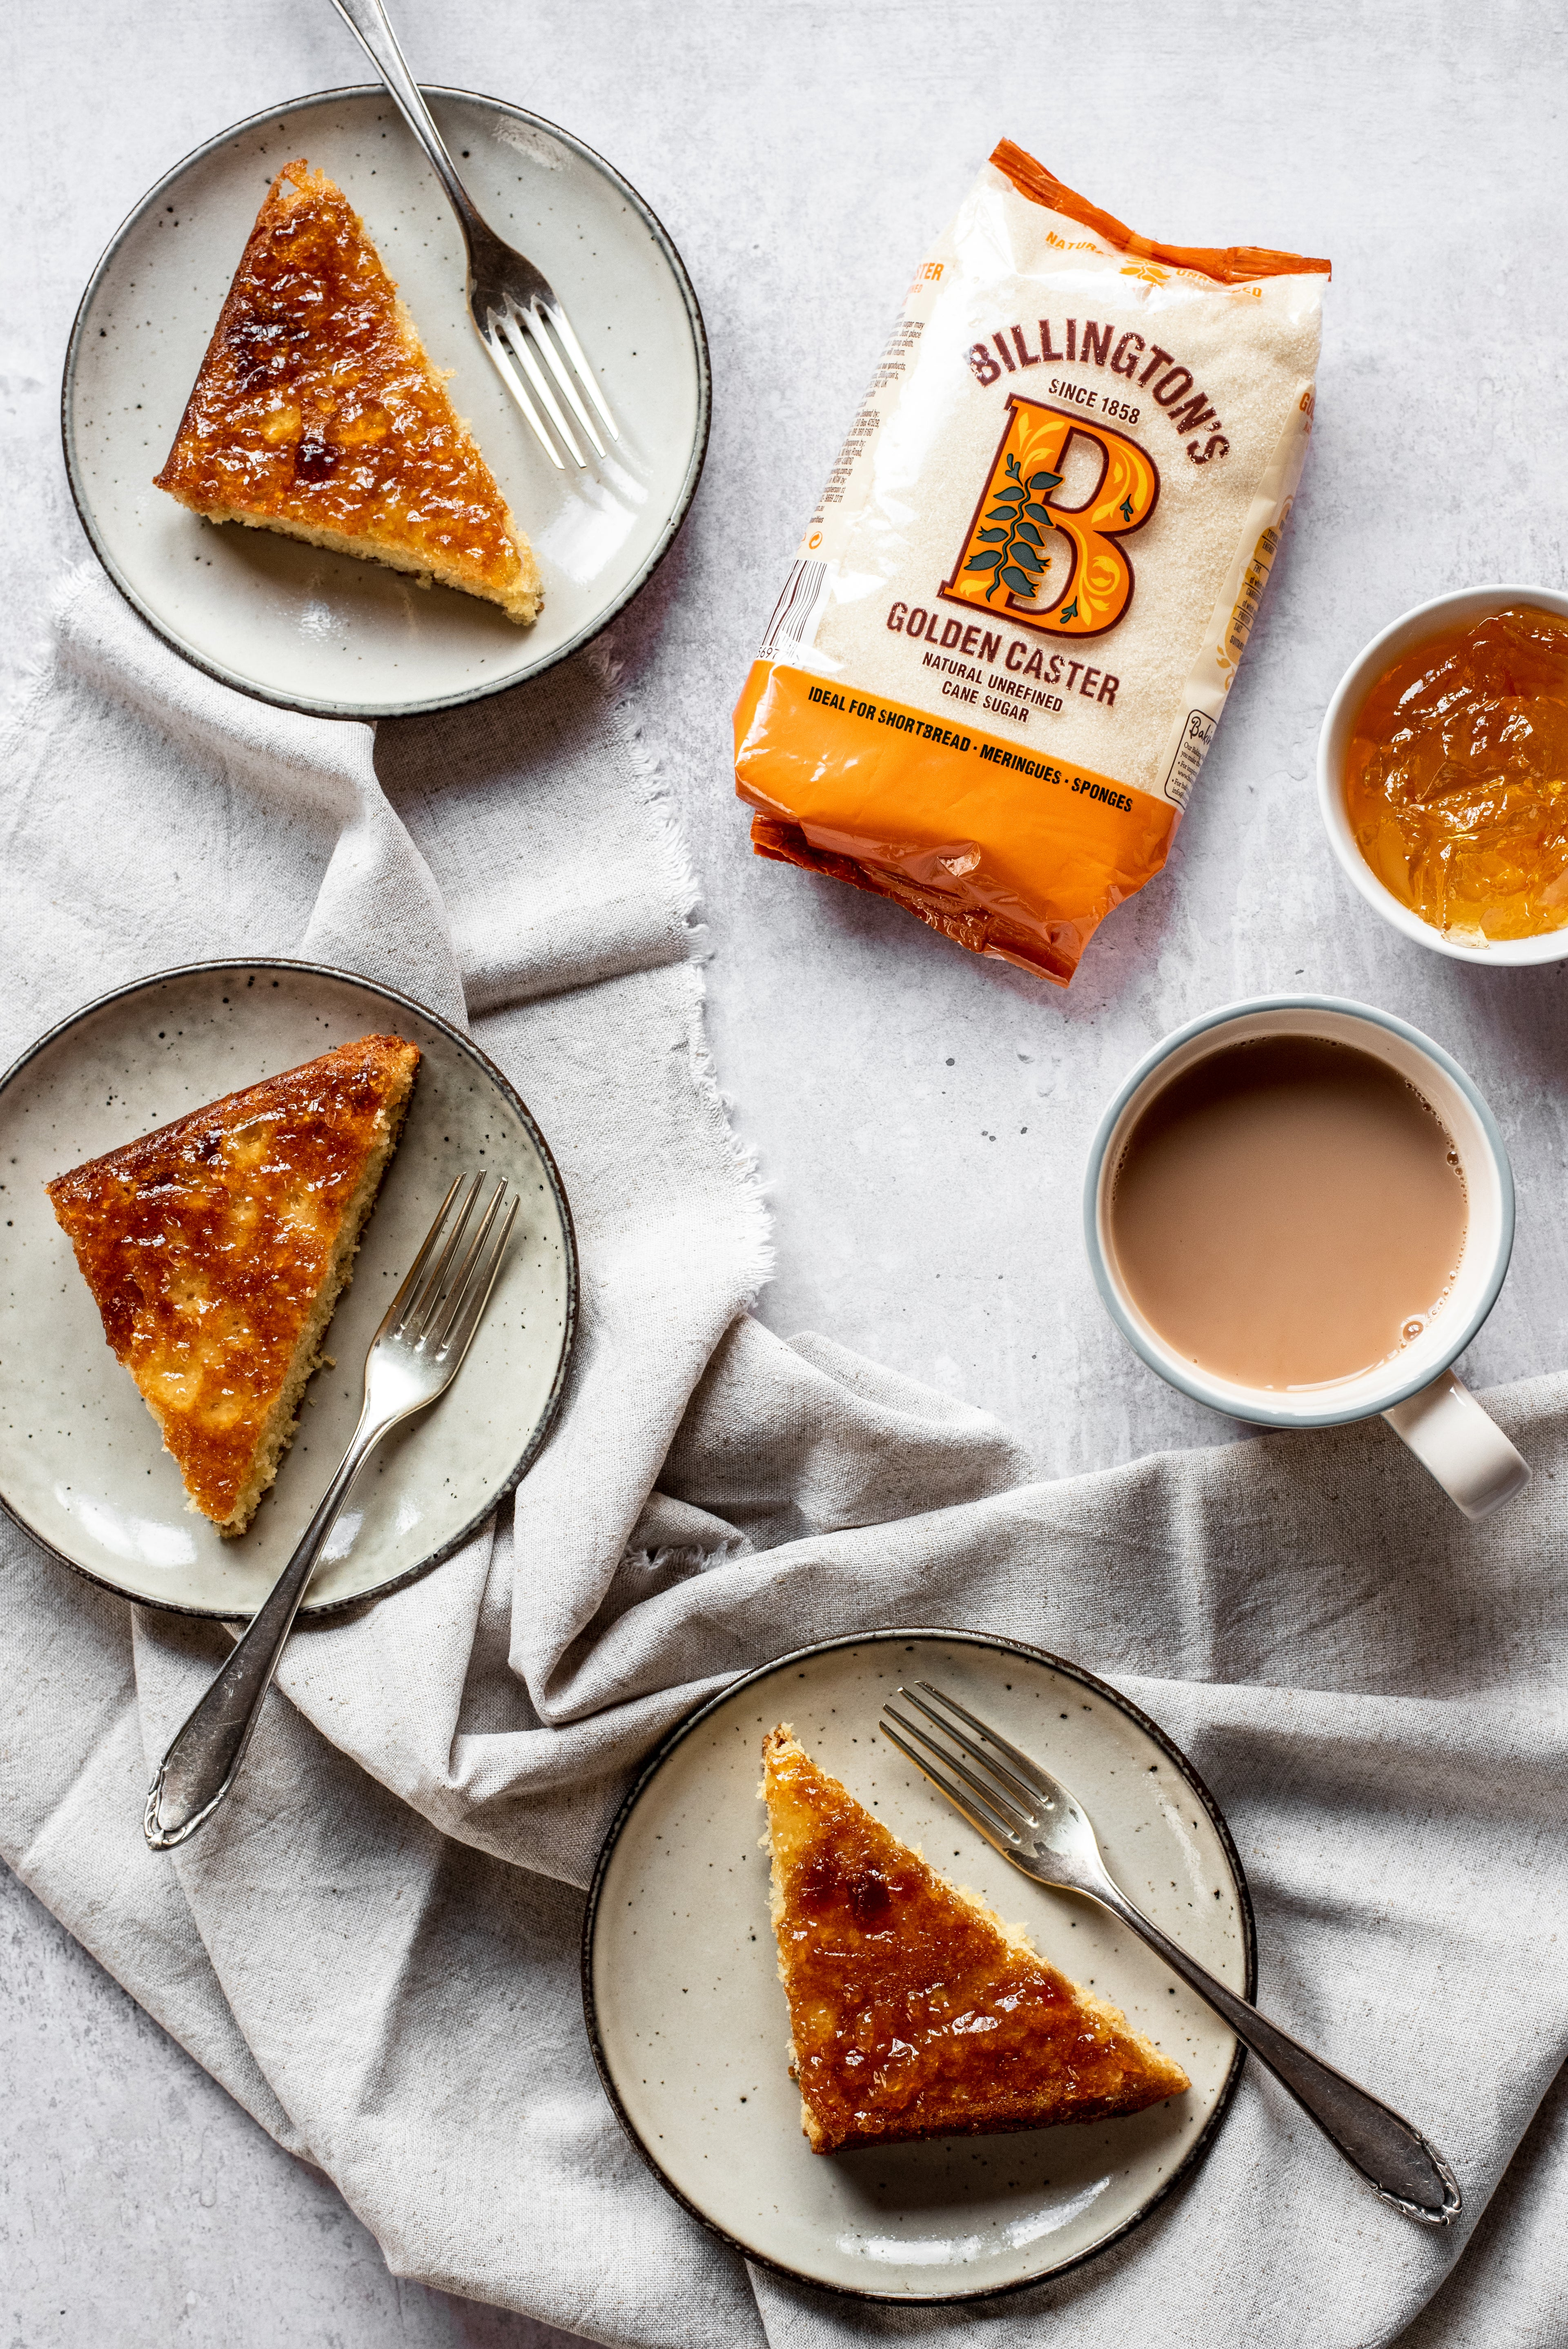 Slices of Marmalade Traybake on plates served with forks, next to a bag of Billington's Caster Sugar and a bowl of marmalade